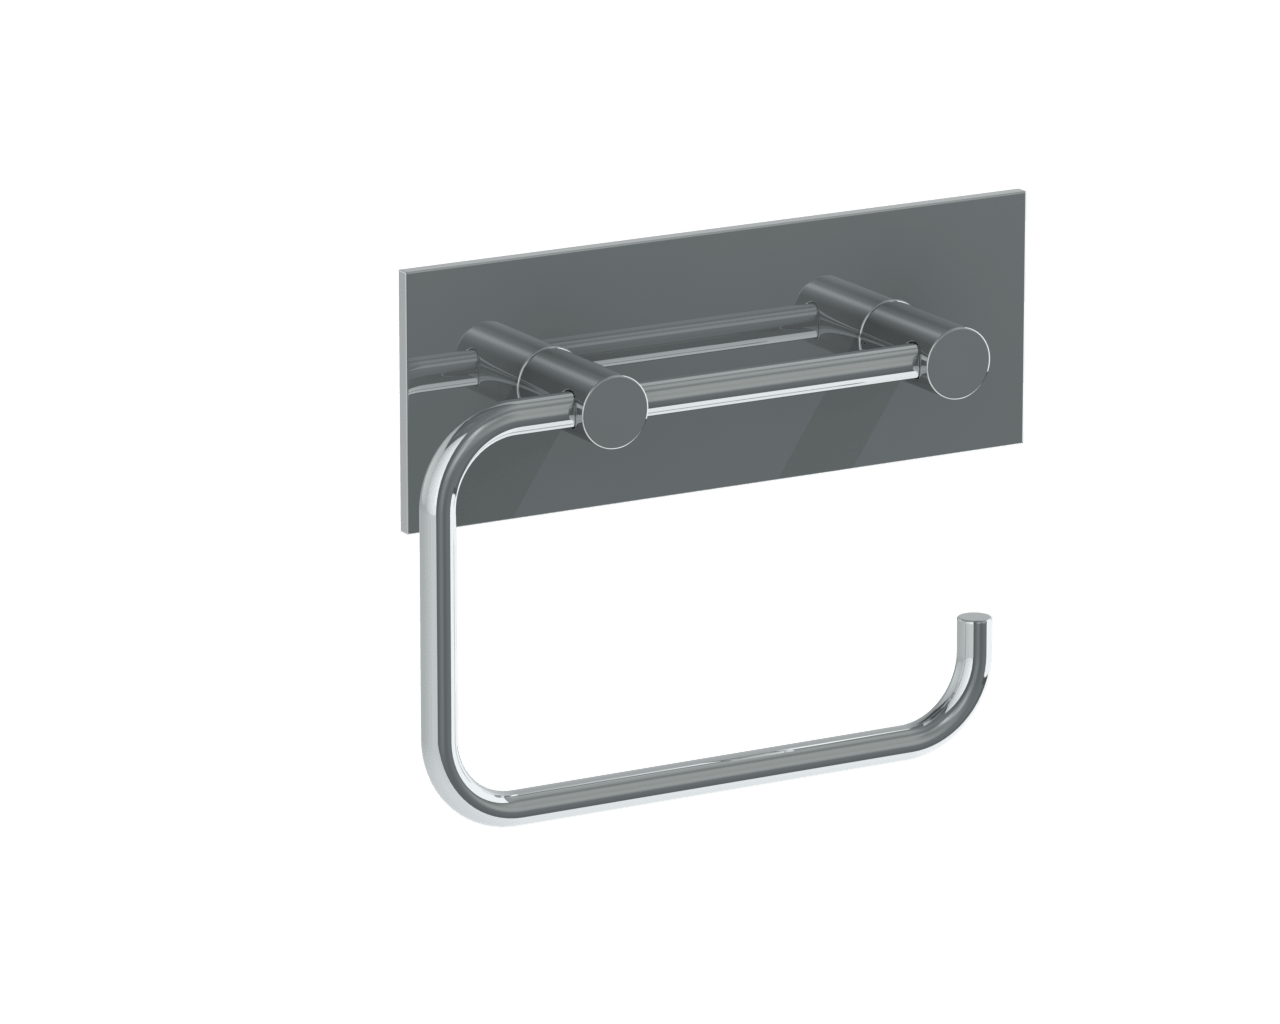 Watermark 21-0.4-CL Elements Paper Holder | QualityBath.com